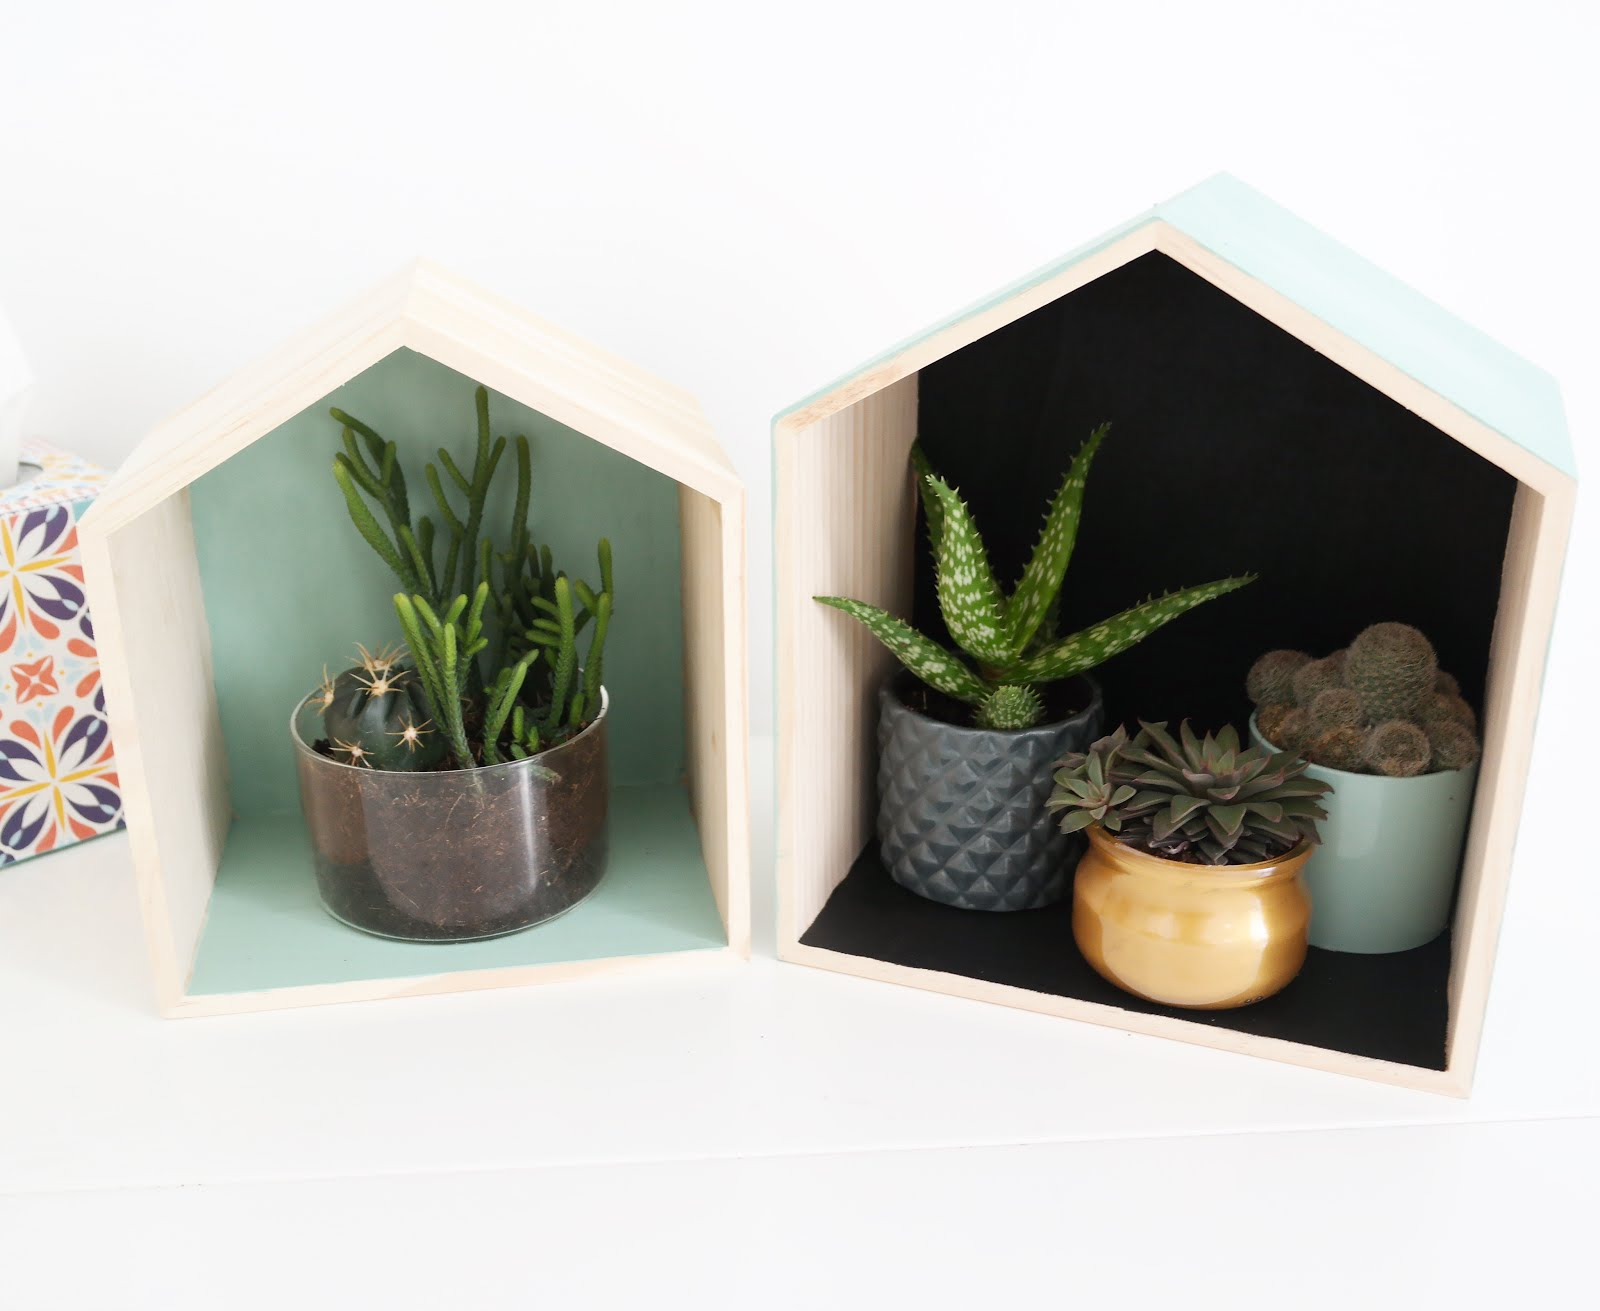 diy les maisons des cactus shylylovely. Black Bedroom Furniture Sets. Home Design Ideas